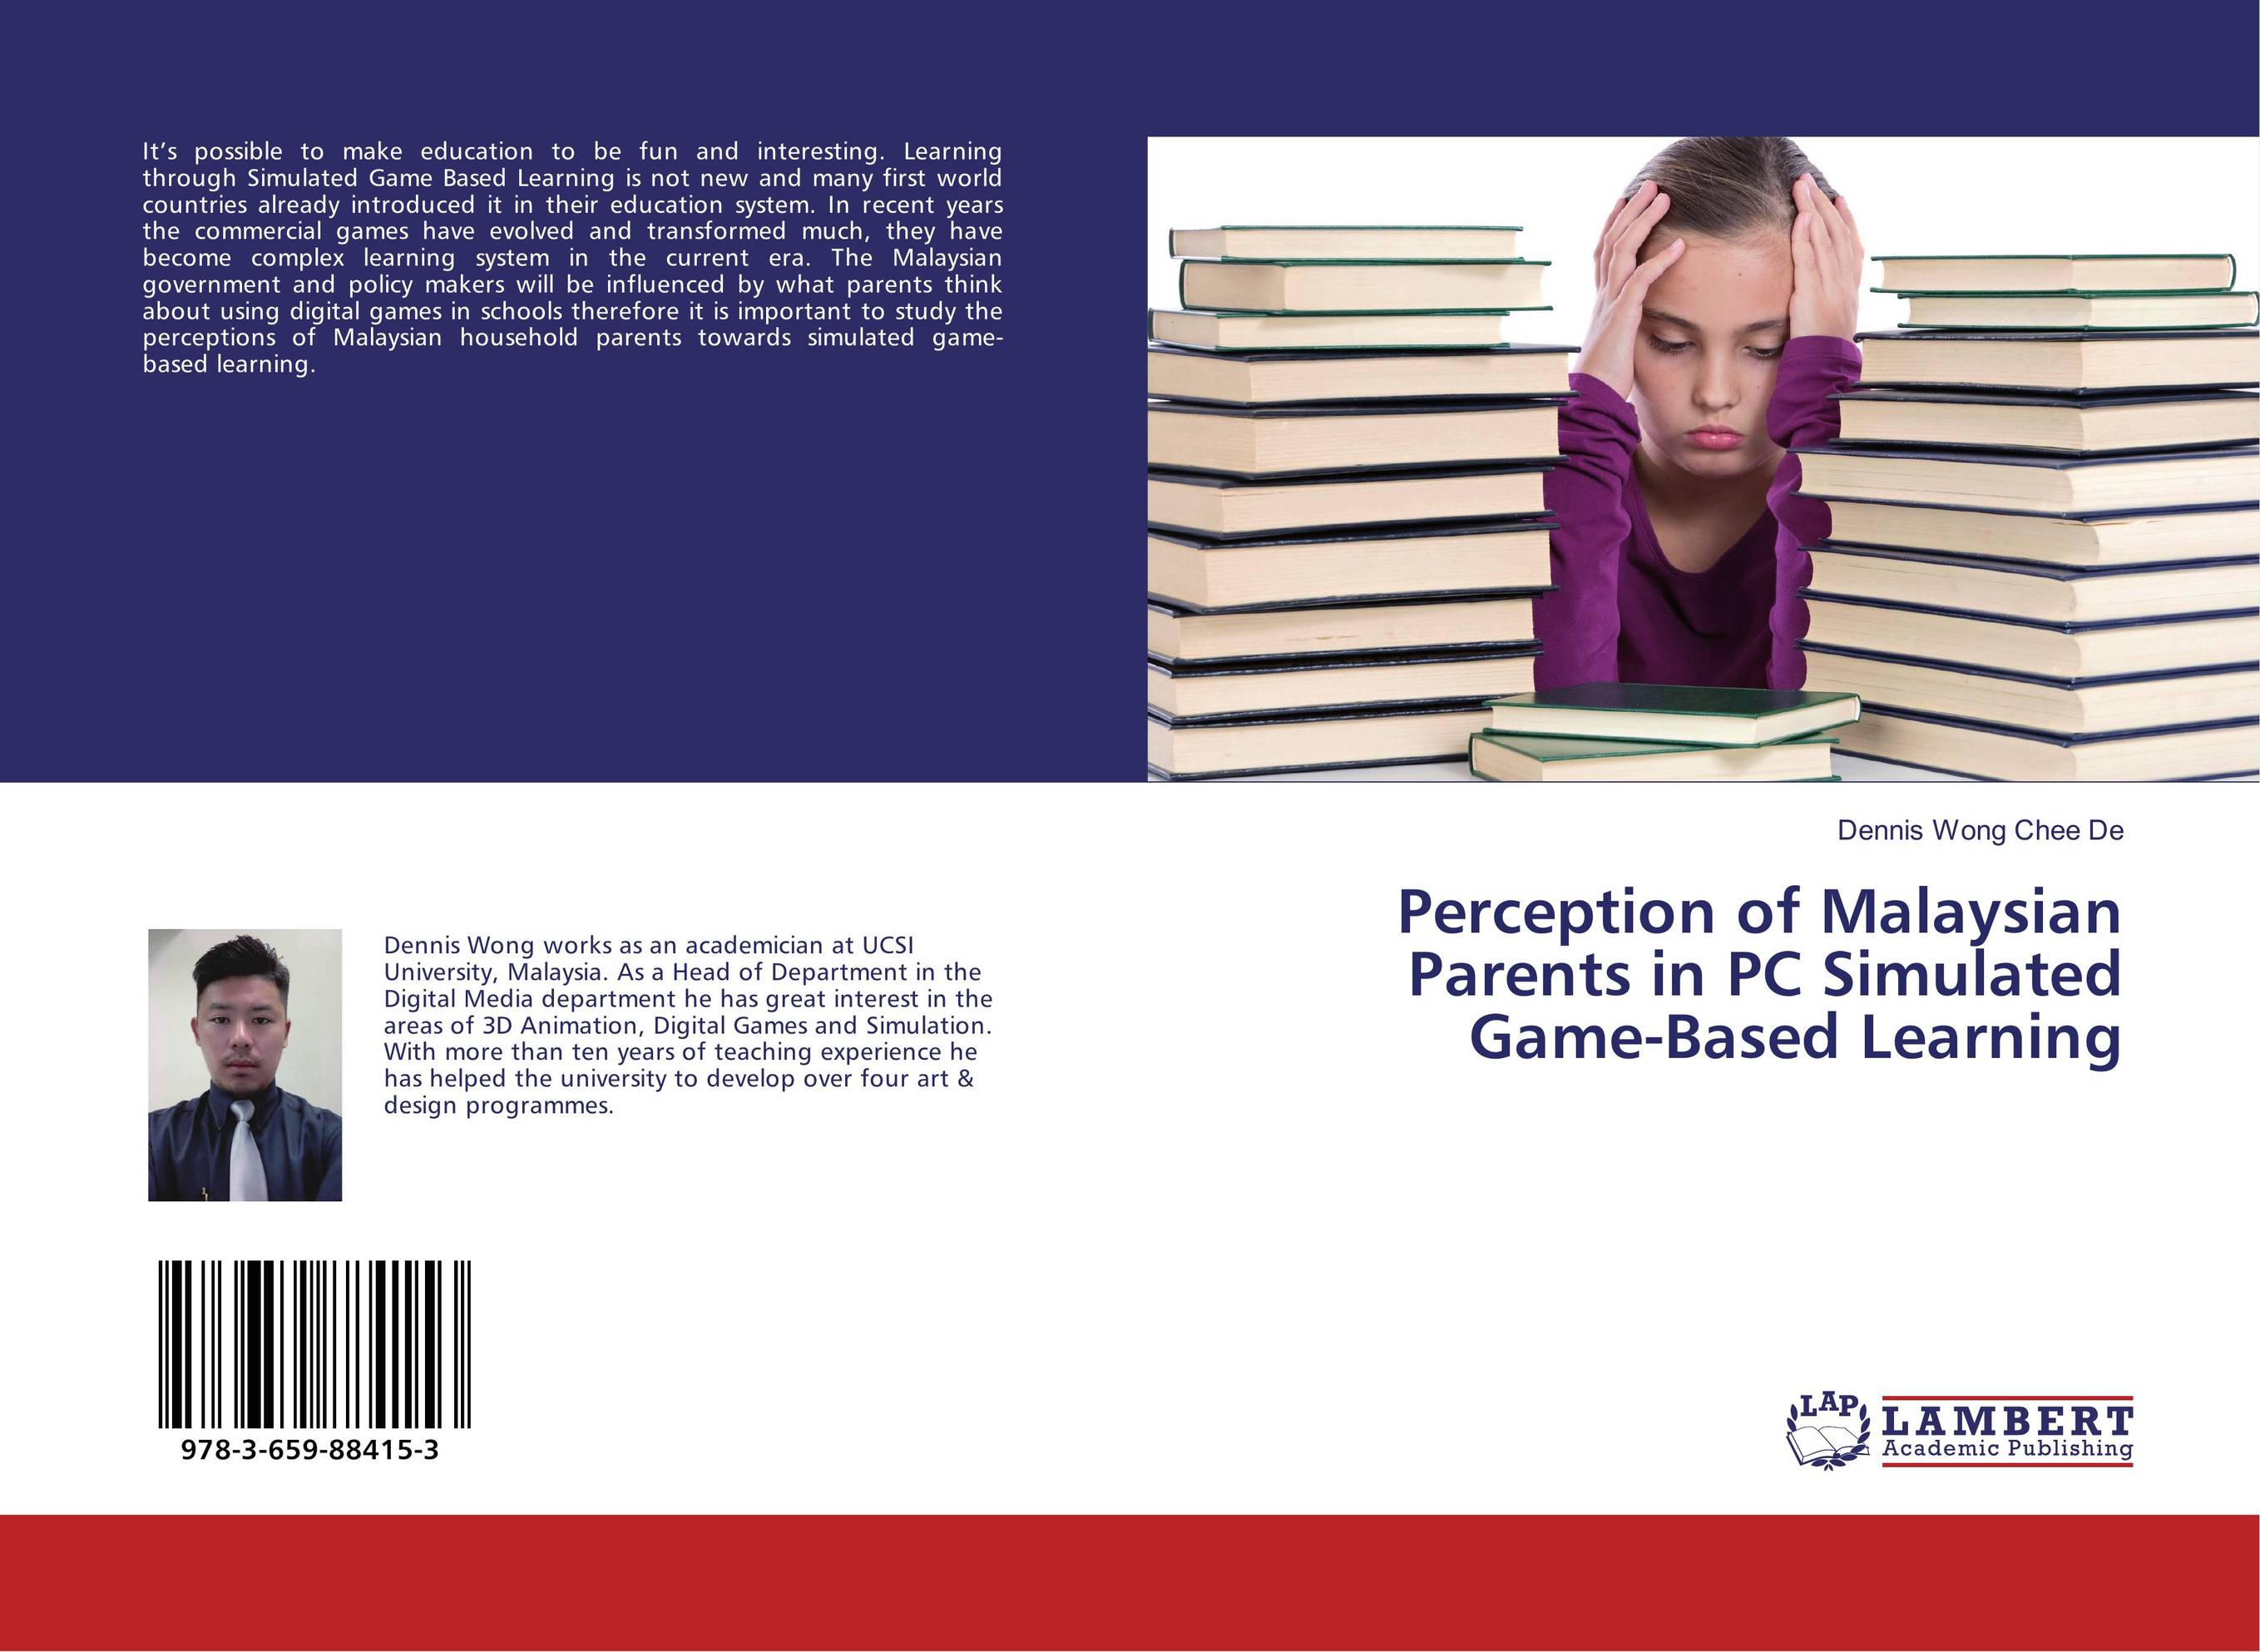 Perception of Malaysian Parents in PC Simulated Game-Based Learning pso based evolutionary learning